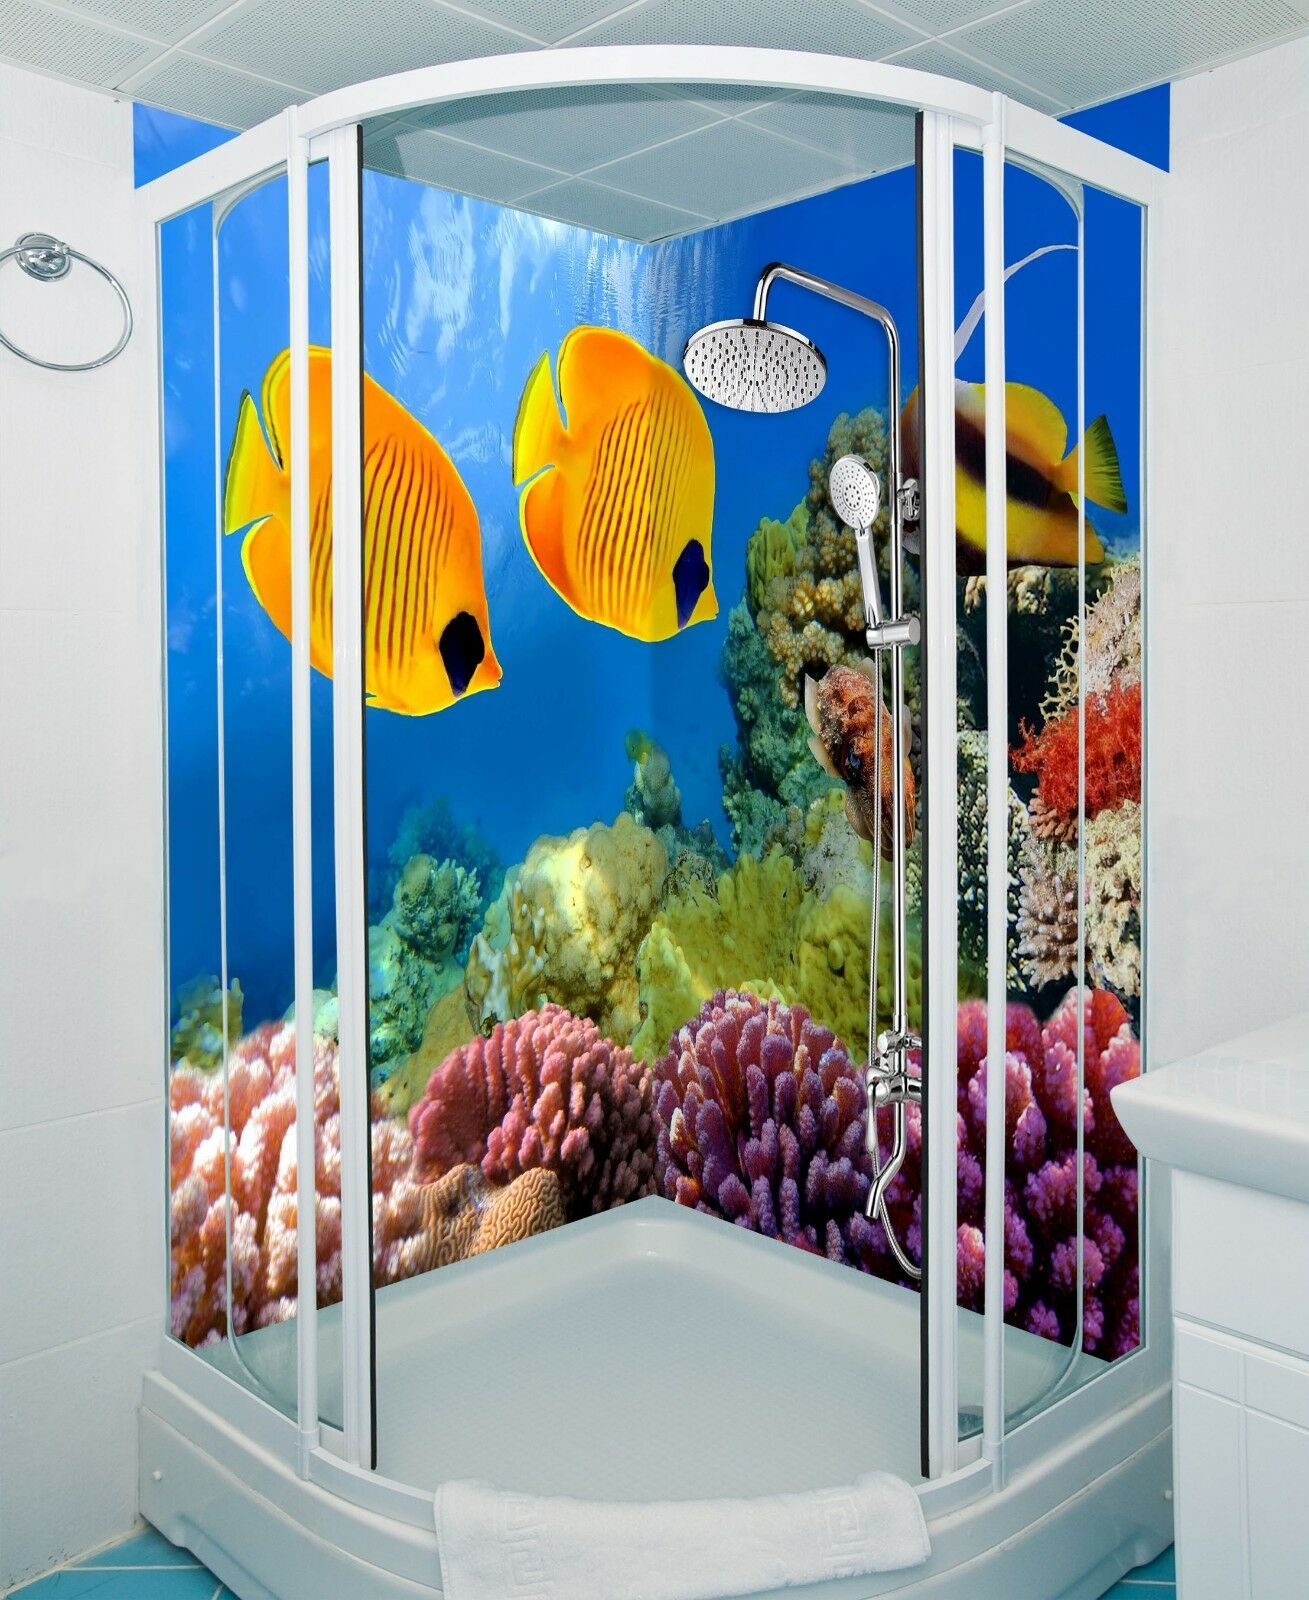 3D Seabed golden Fish6 WallPaper Bathroom Print Decal Wall Deco AJ WALL CA Carly